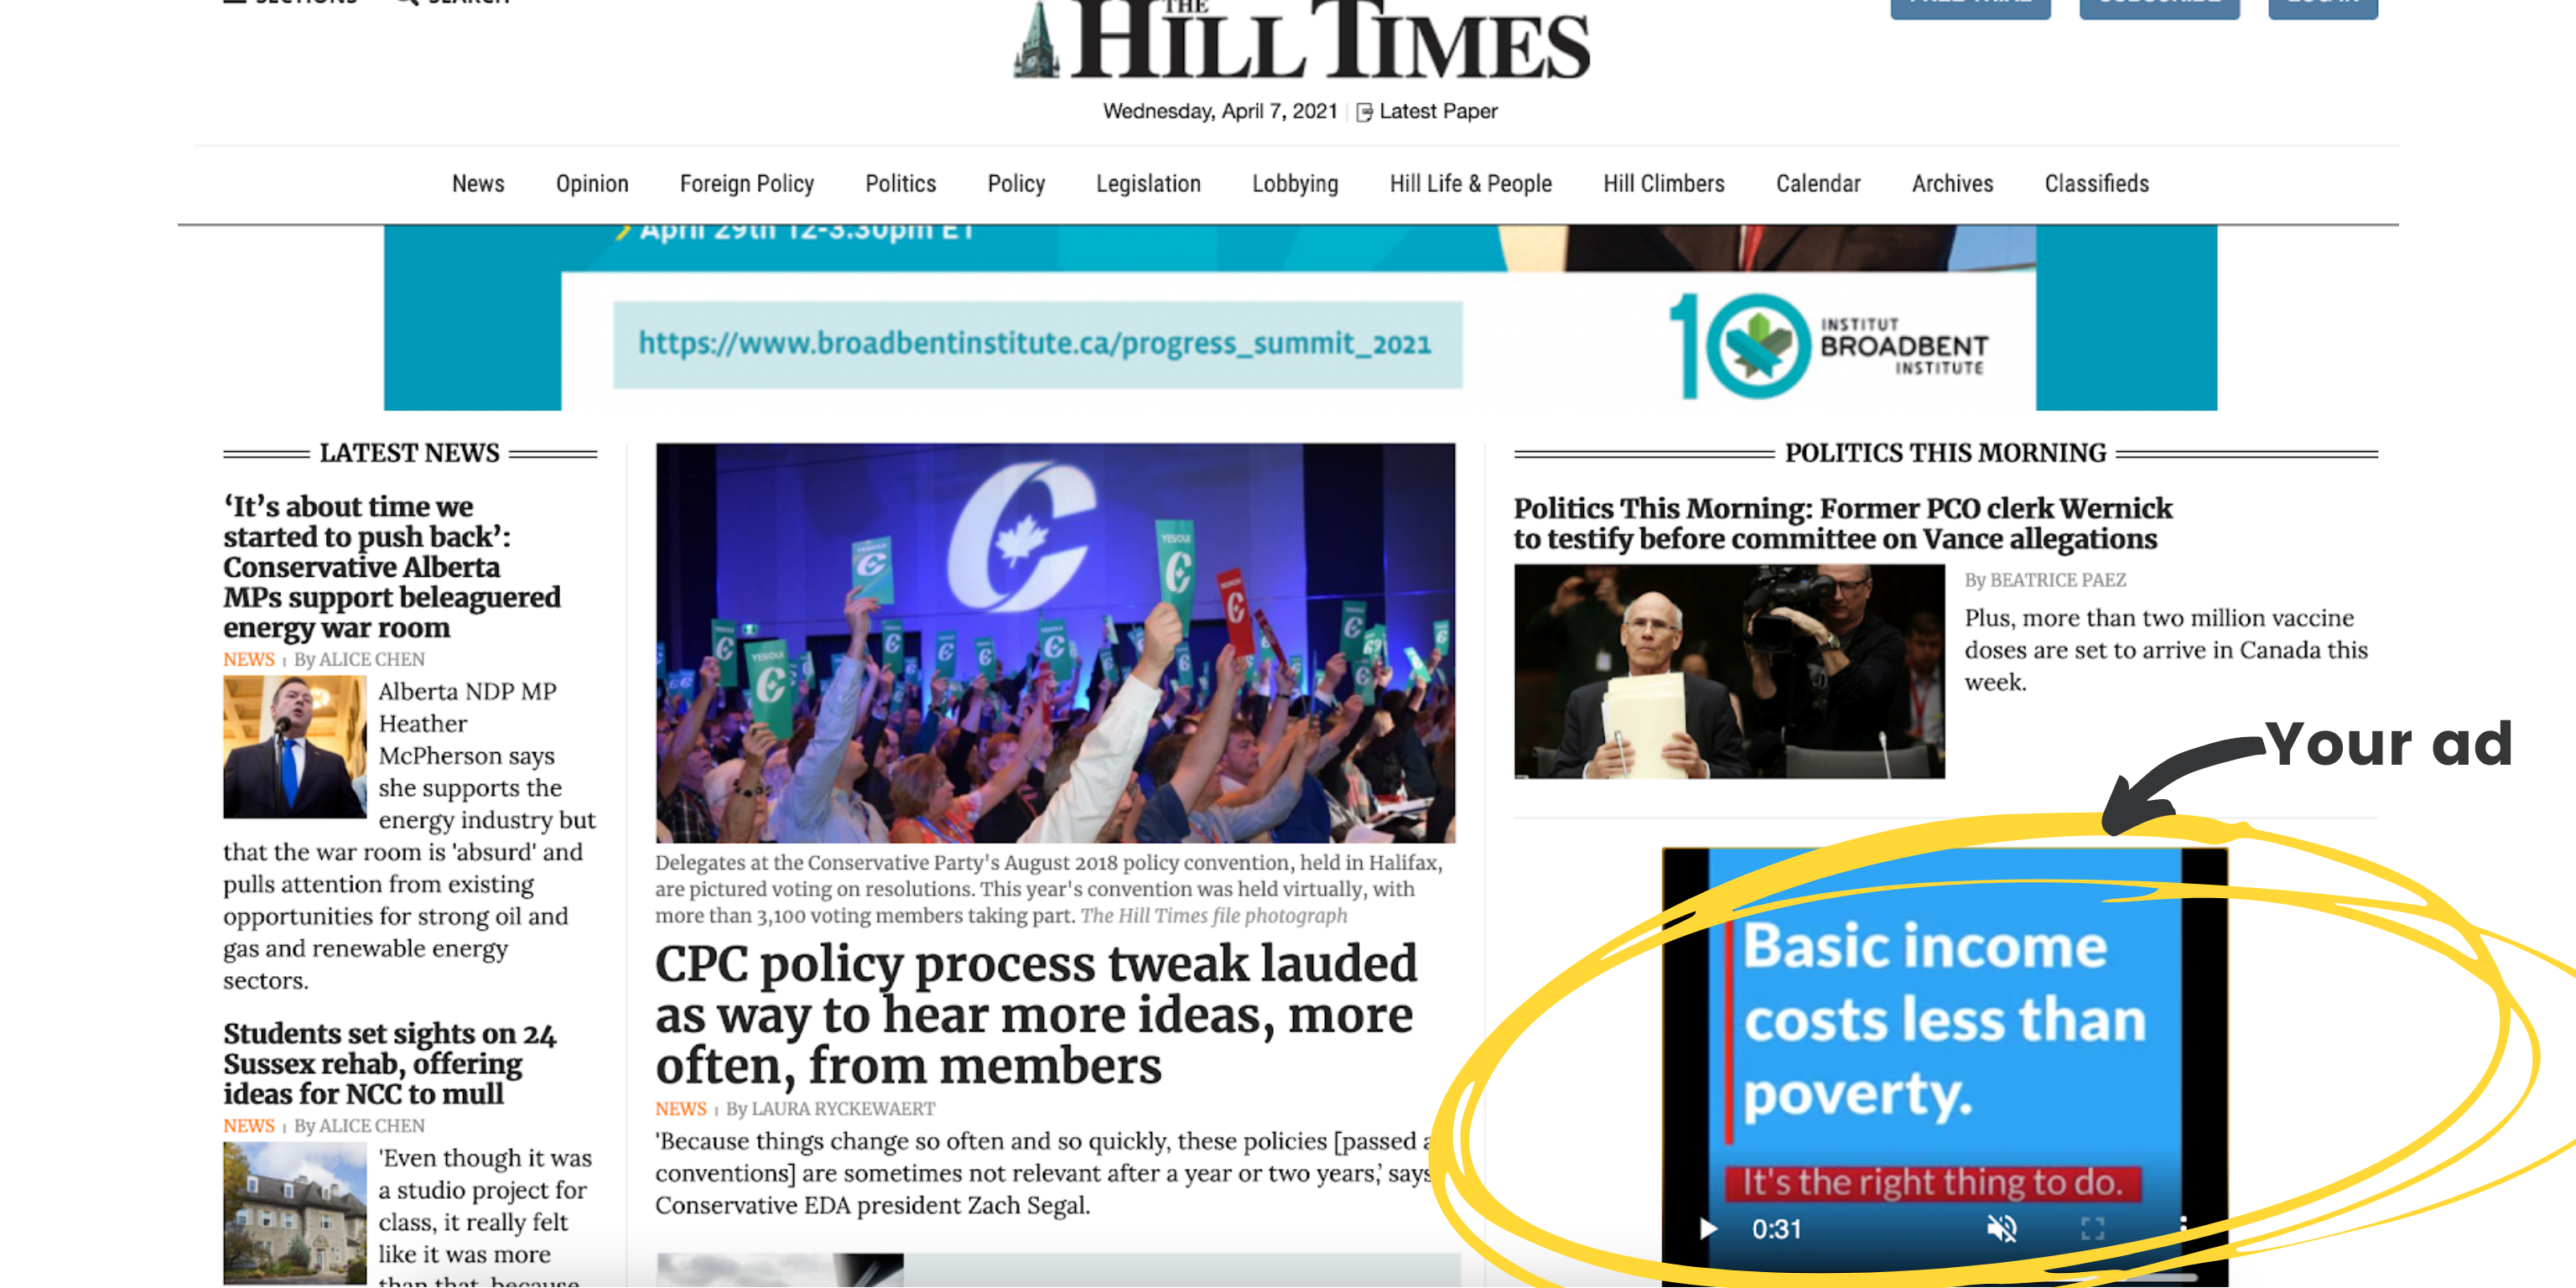 Screenshot of the basic income video ad on the Hill Times website